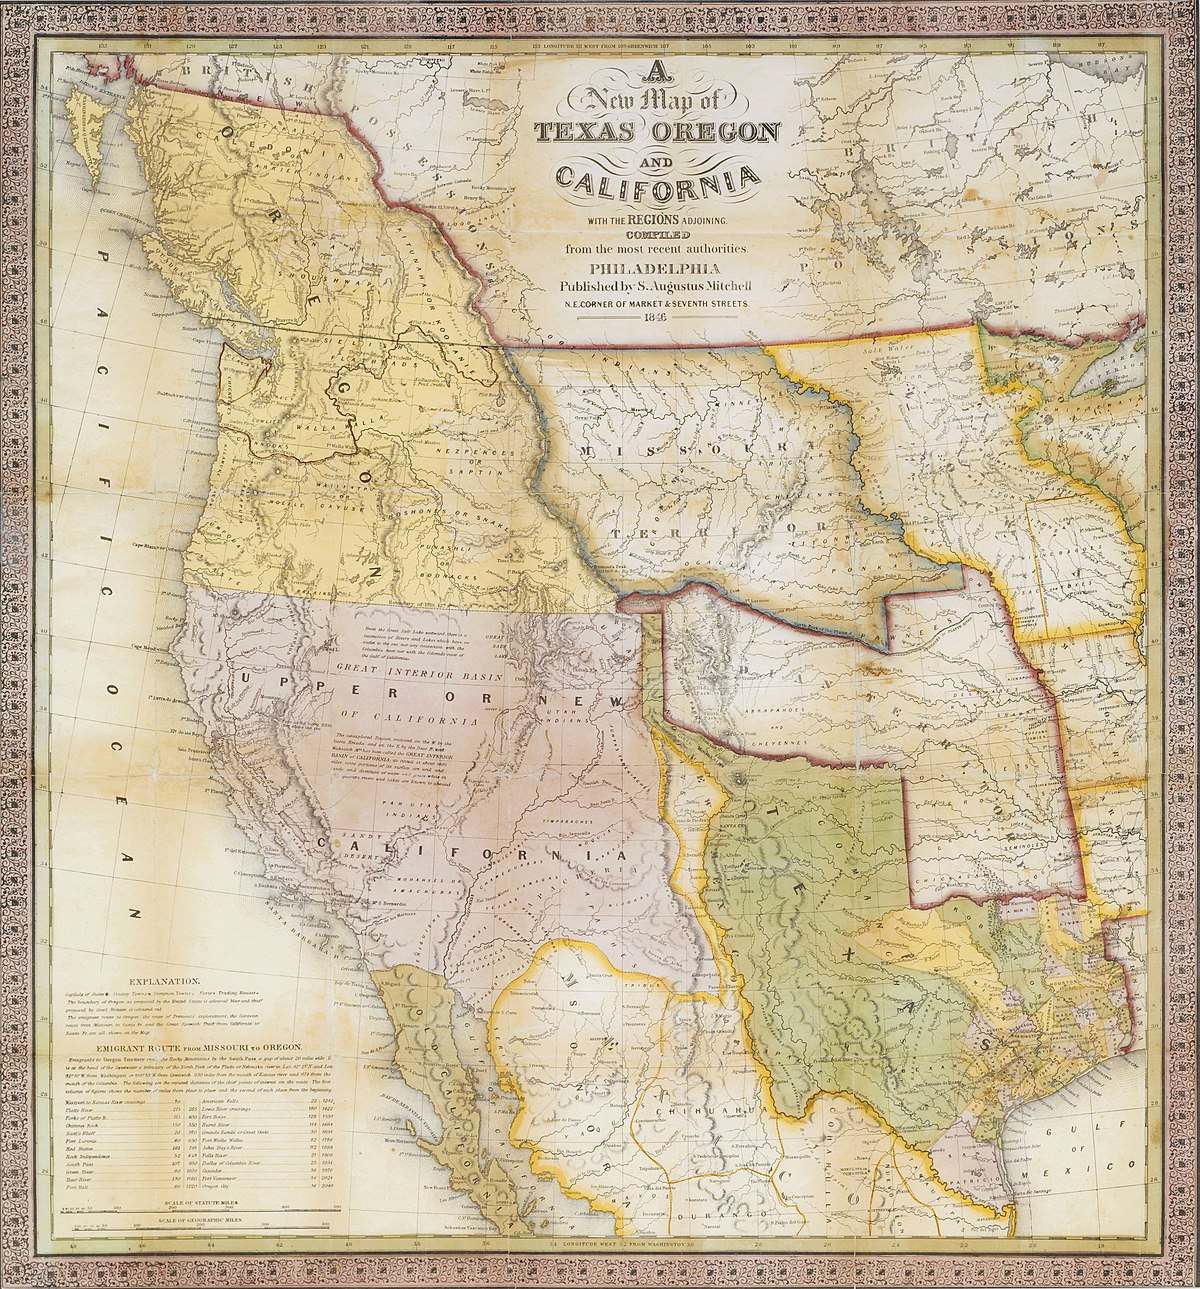 Mitchell A New Map of Texas, Oregon, and California 1846 UTA.jpg